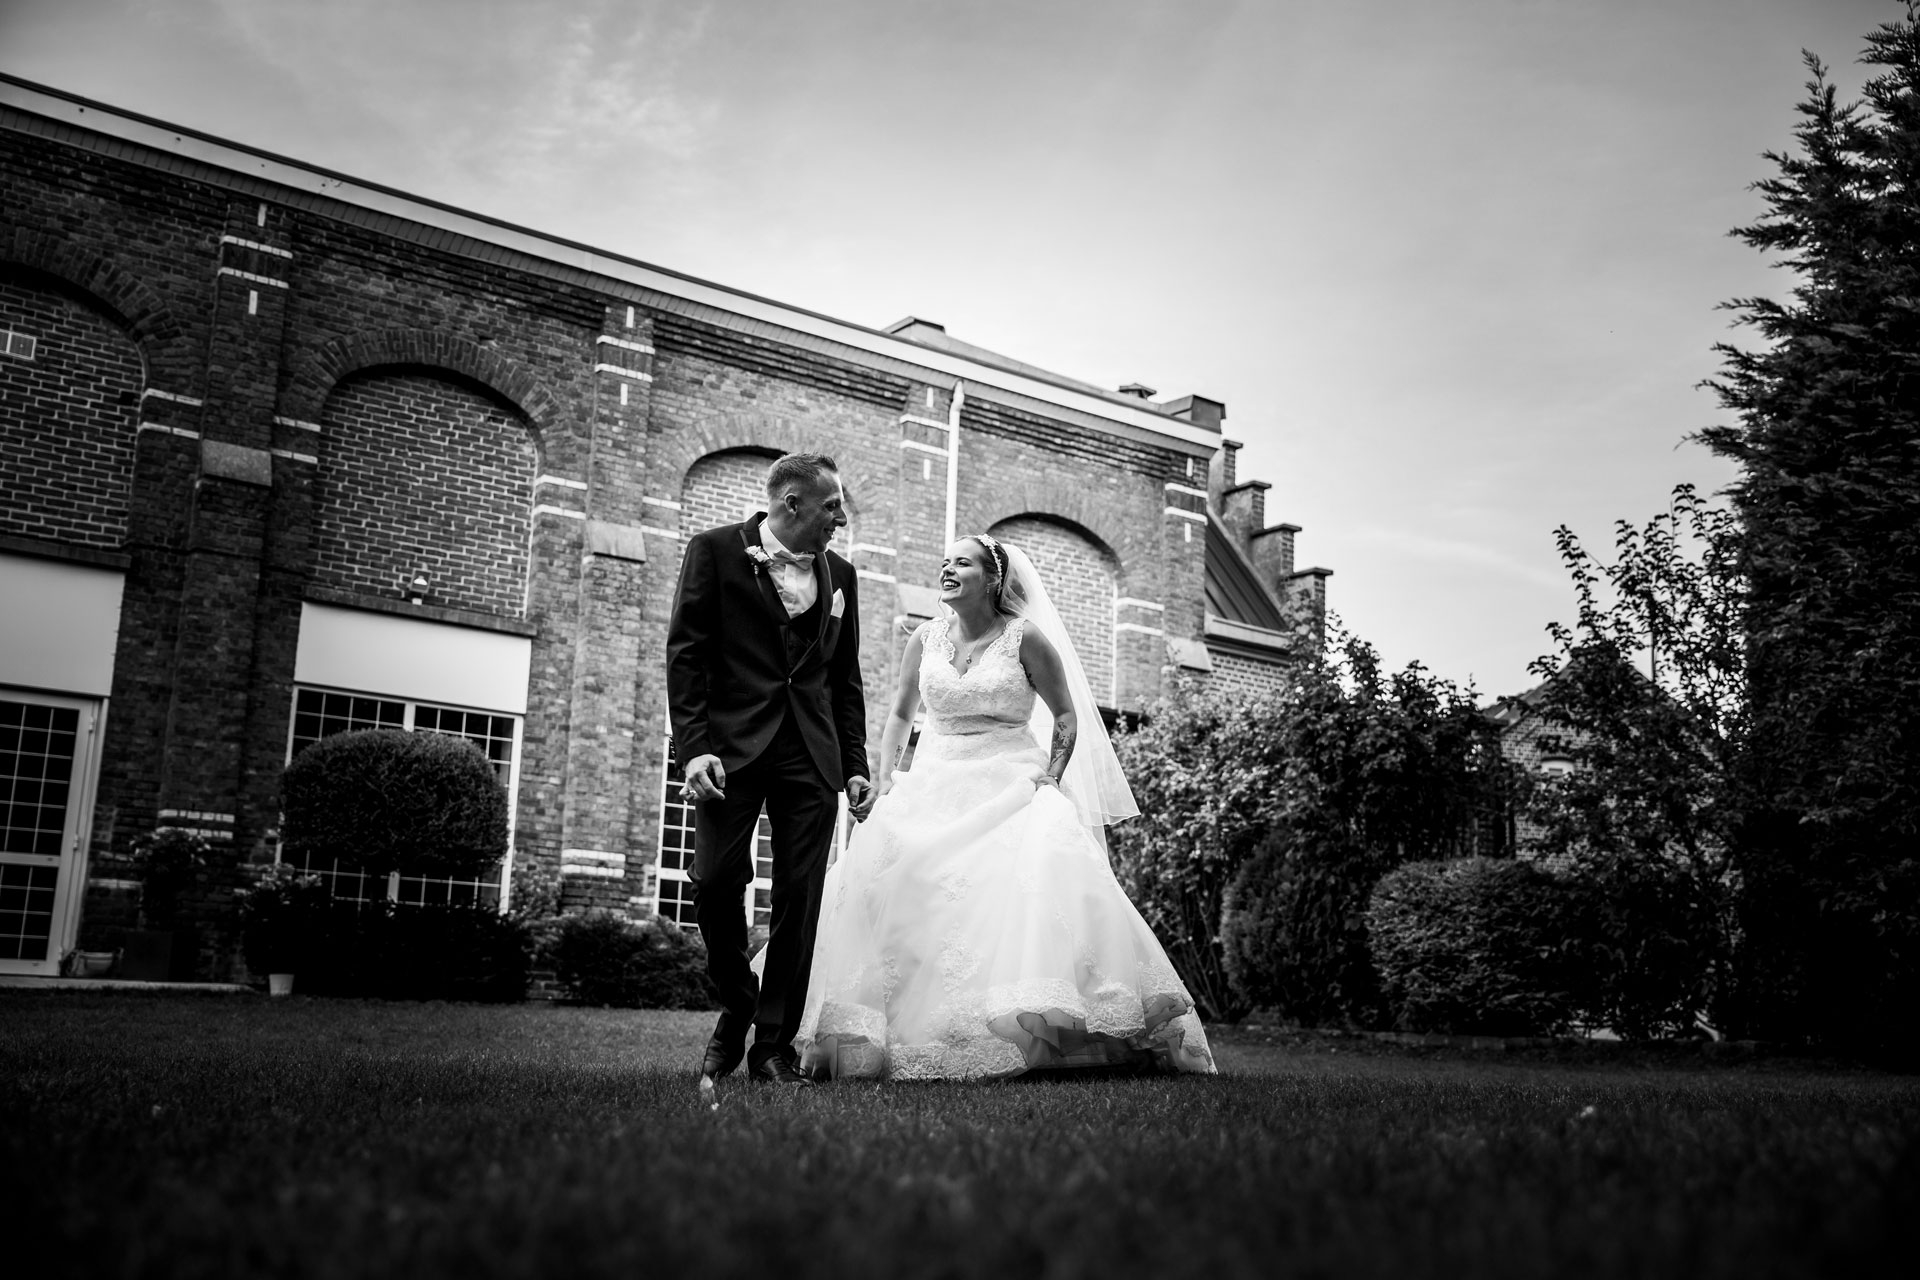 20200912-mariage-ophelie-alexandre-057